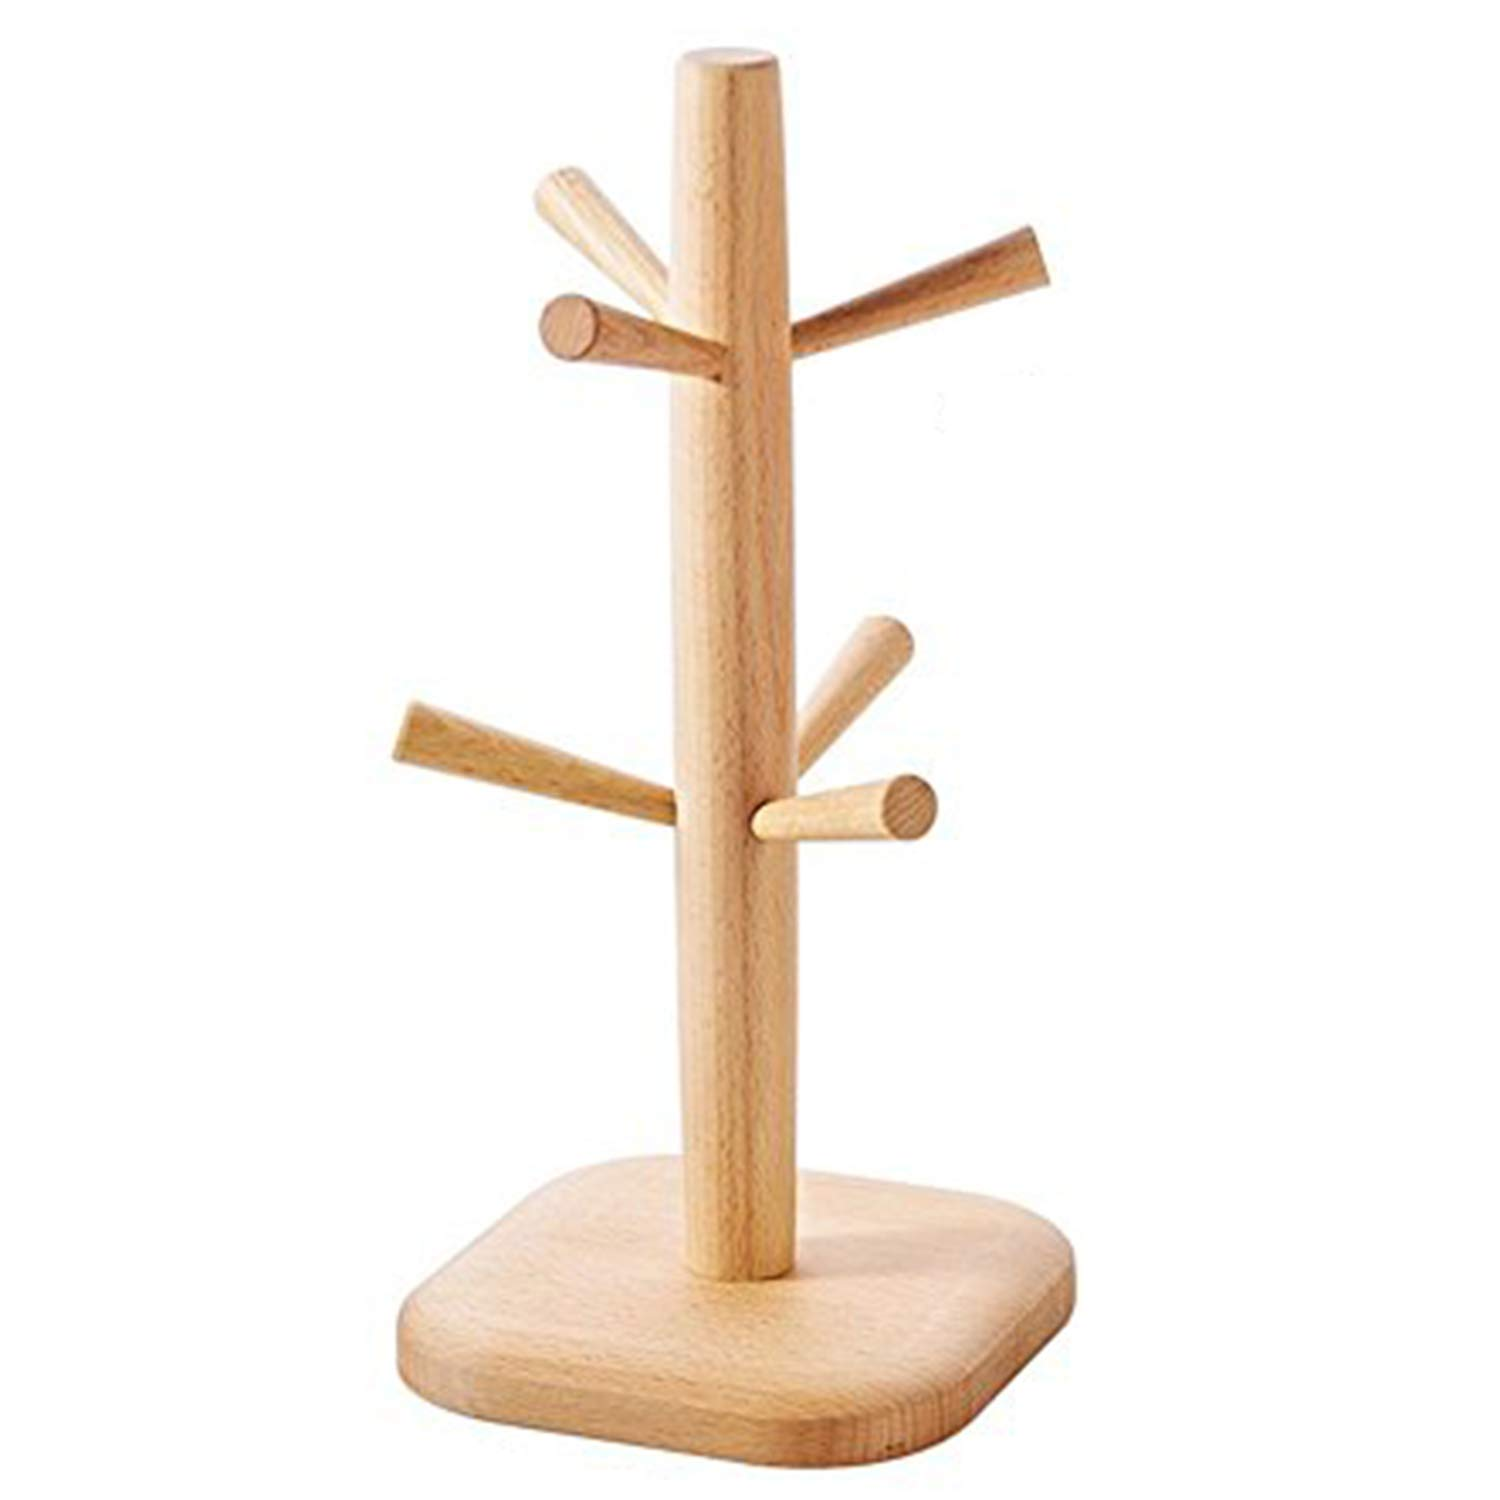 Party Bar. Wooden Cup / Mug Rack, 6 Hooks Coffee/Water Cups Drying Storage Holder Display Stand, Home Kitchen Collect Hanger Organizer, Great Idea For Housewarming (Square Bottom)